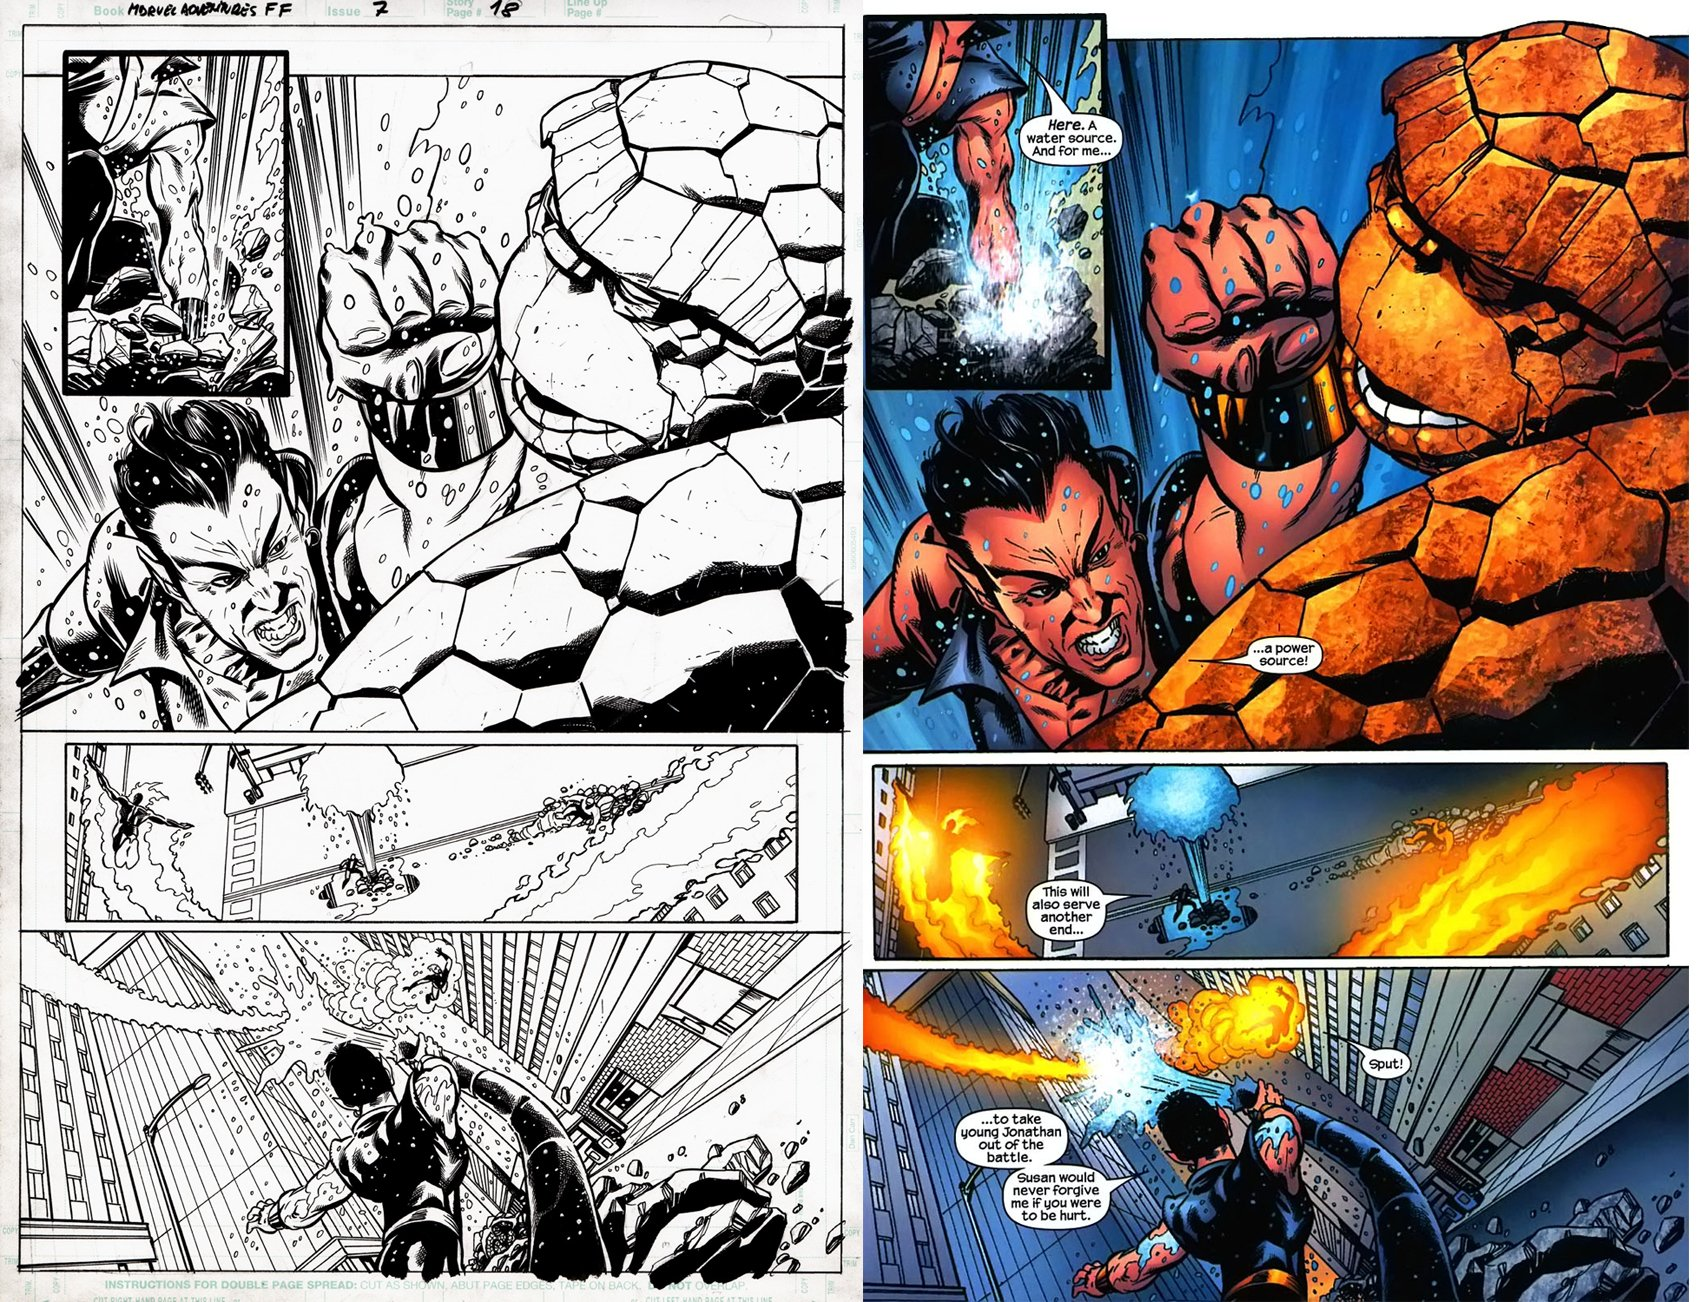 Marvel Adv. Fantastic Four #7 p 18 (SOLD LIVE ON 'DUELING DEALERS OF COMIC ART' EPISODE #31 PODCAST ON 8-14-2021(RE-WATCH THIS FUNNY ART SELLING SHOW HERE)